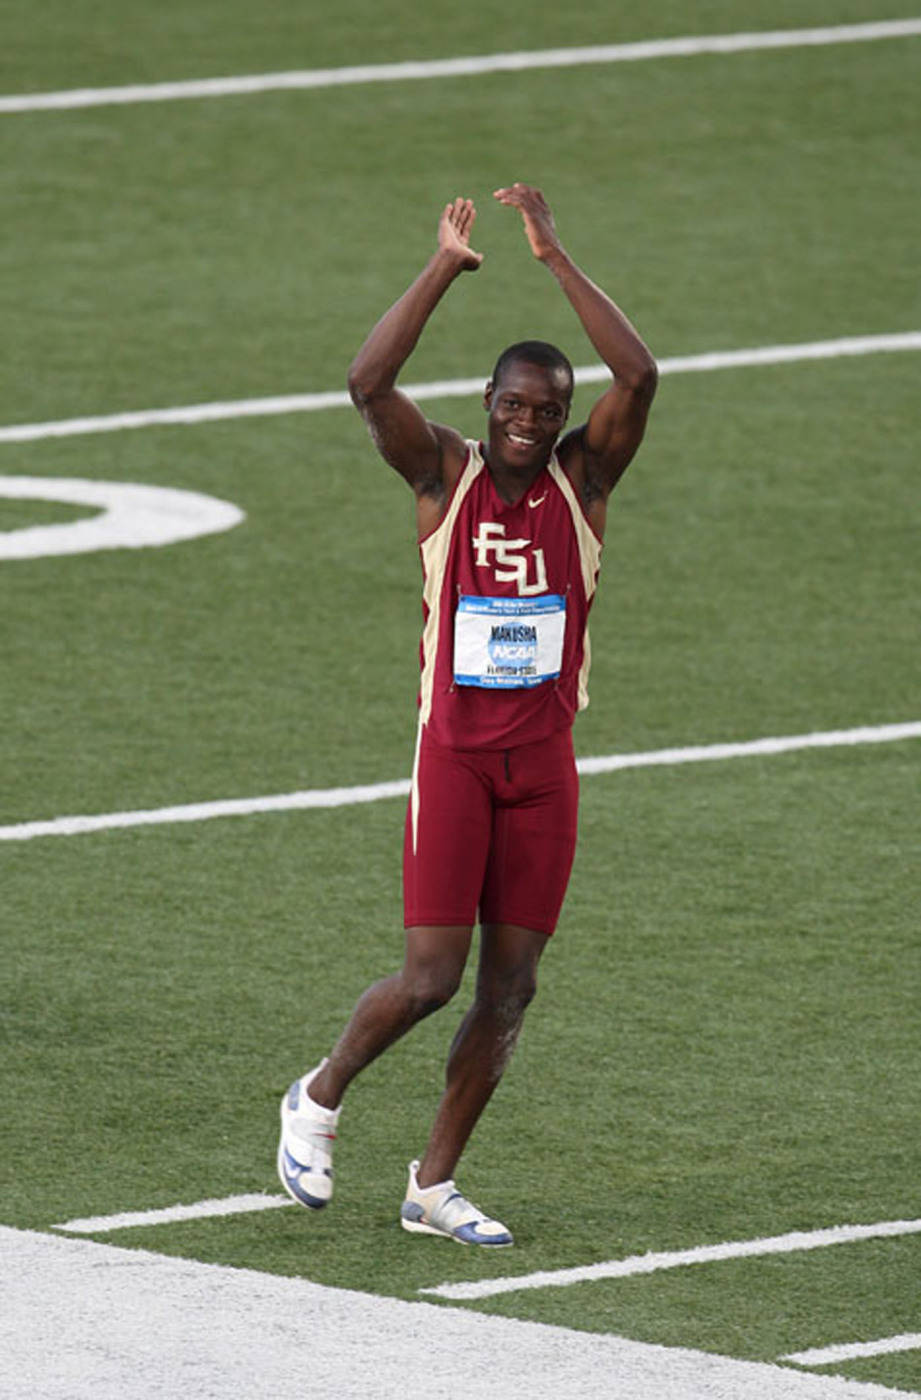 Ngoni Makusha returns the applause of the crowd after winning the long jump.